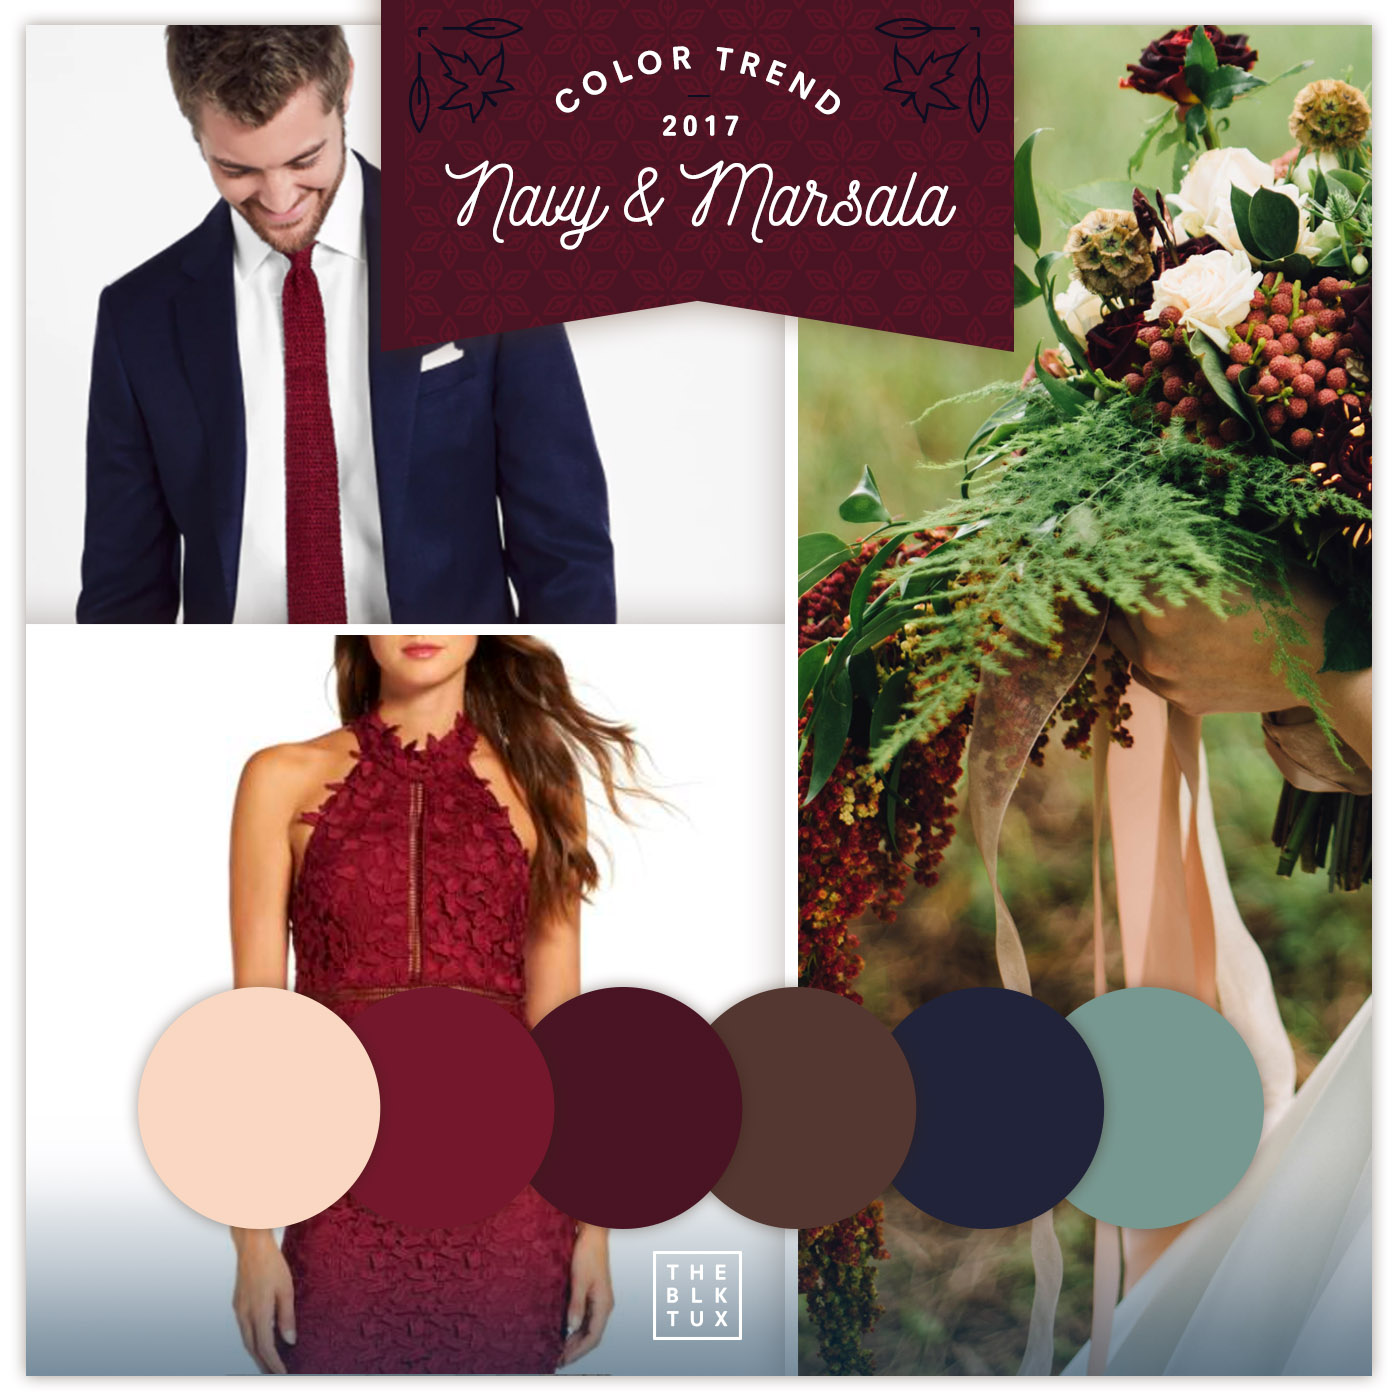 Vendor Spotlight & Fall Color Trends That We Love